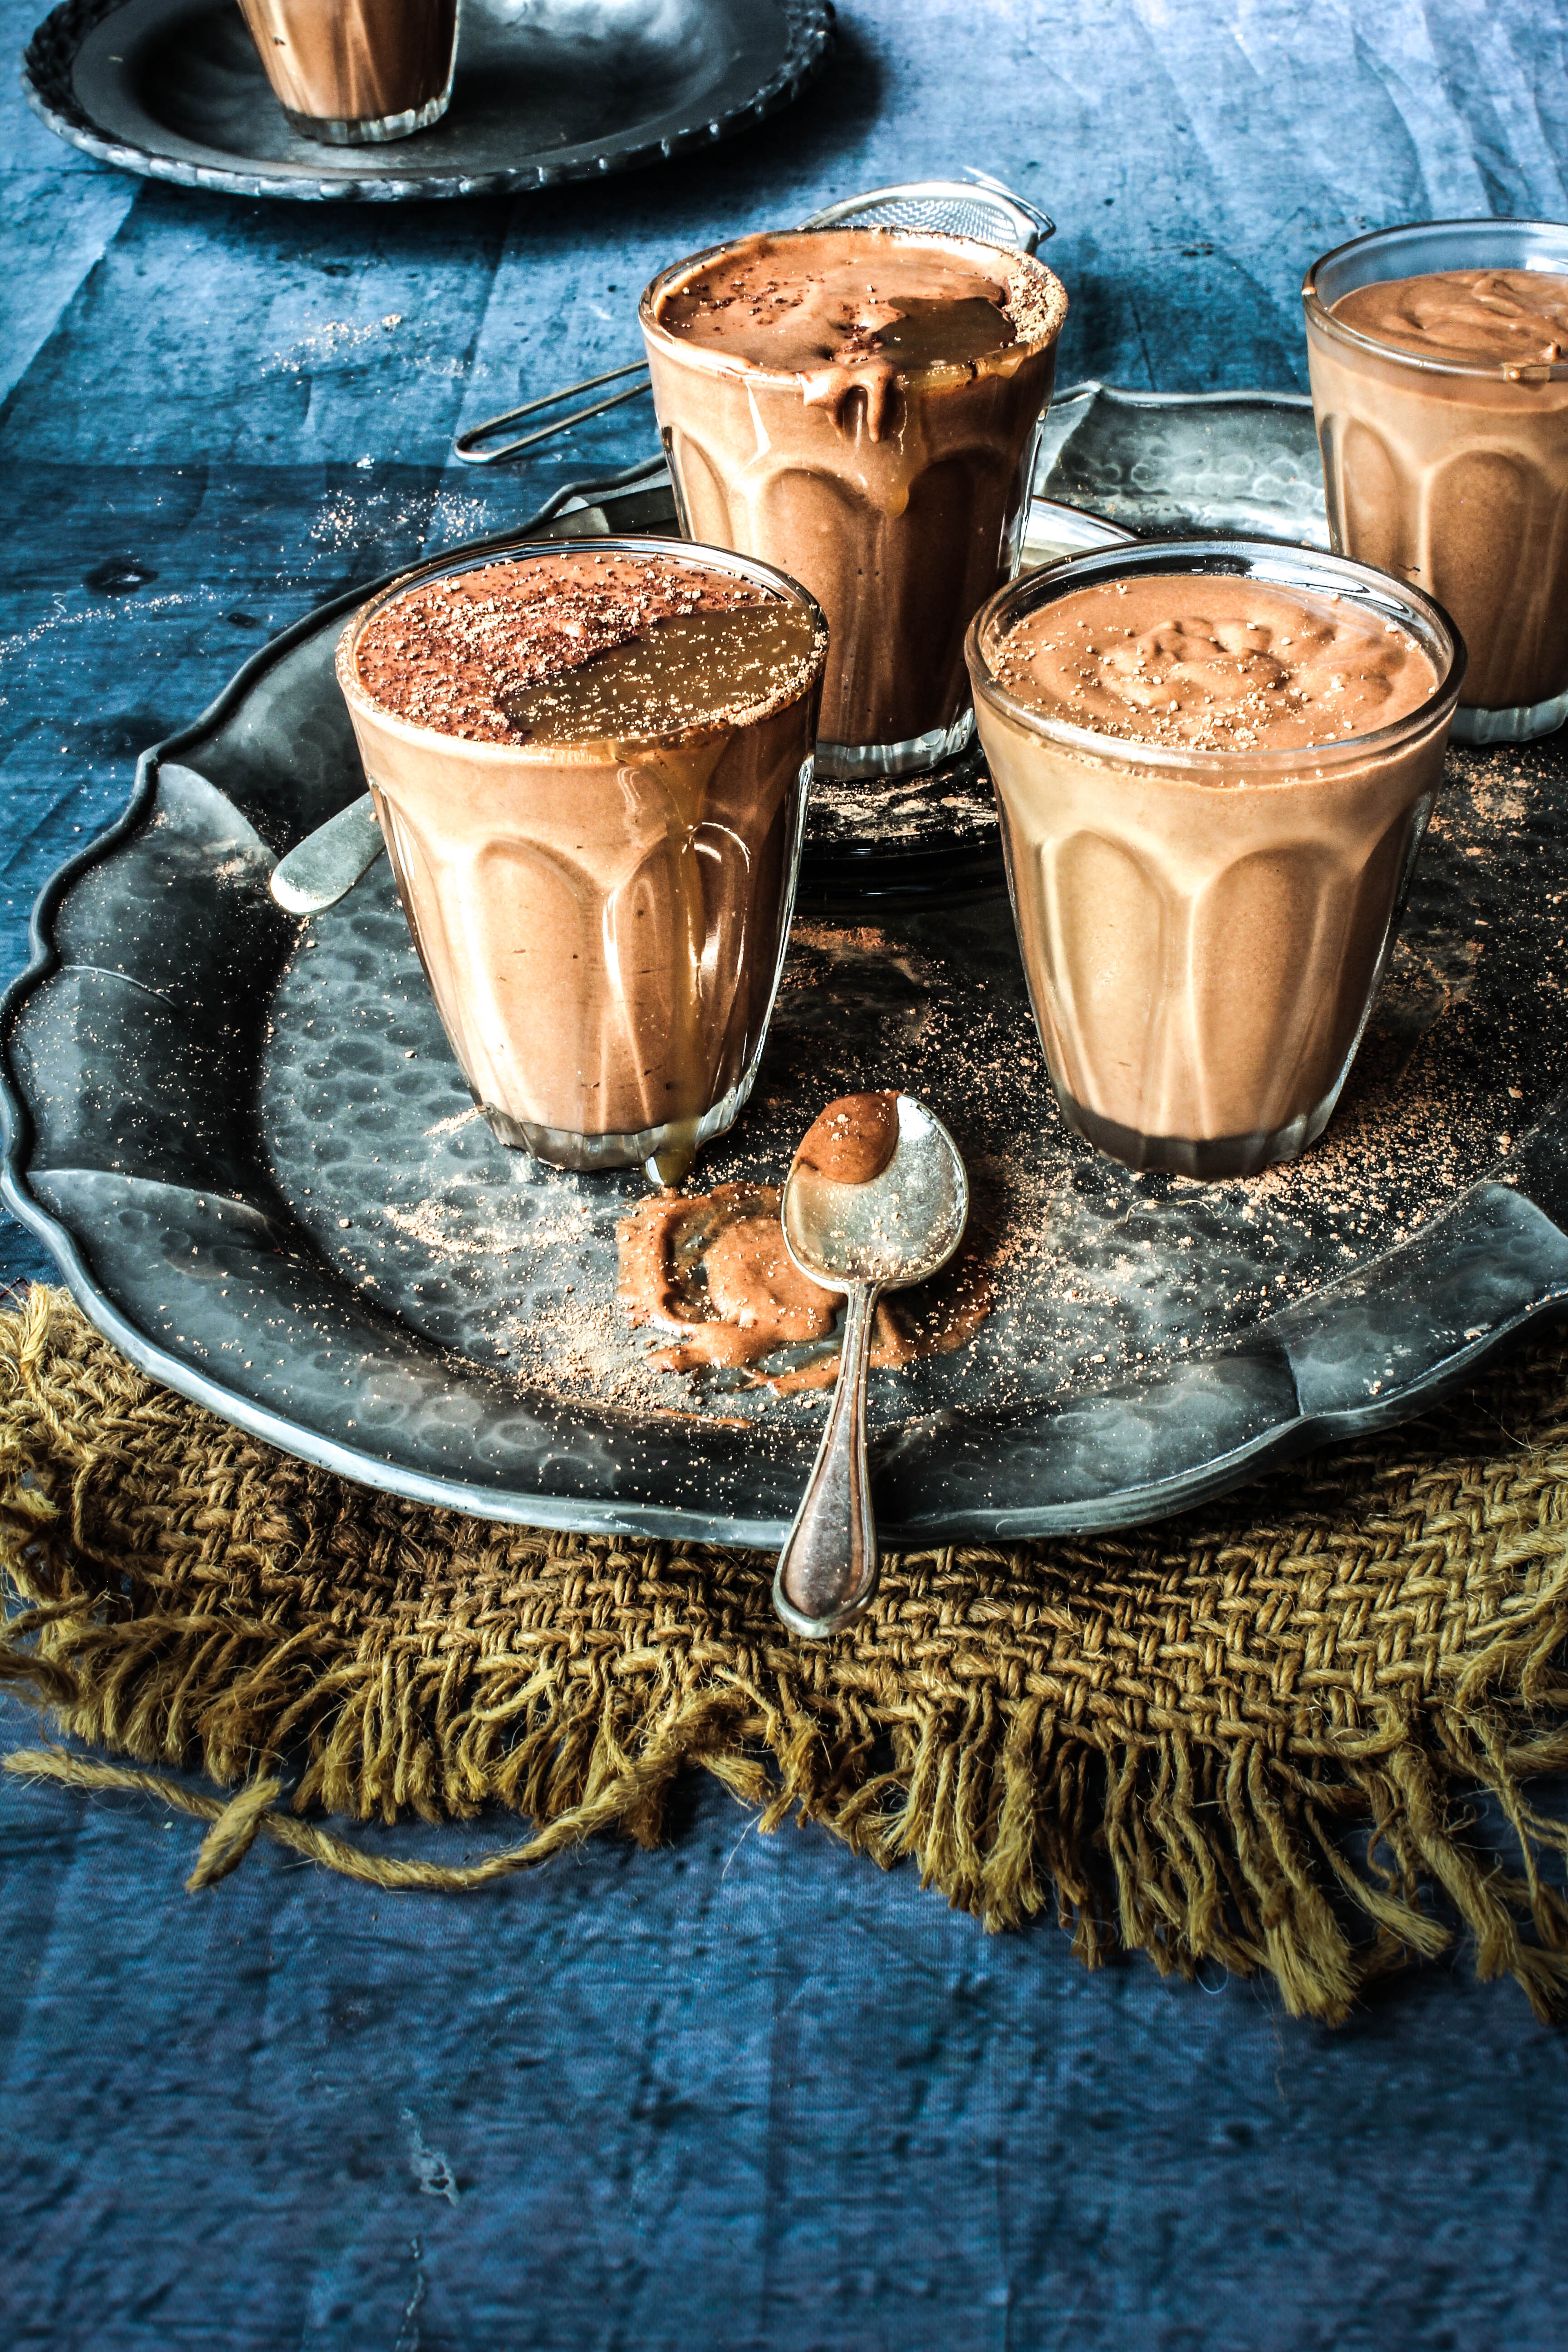 Chocolate Kahlua Mousse with Salted Caramel Sauce